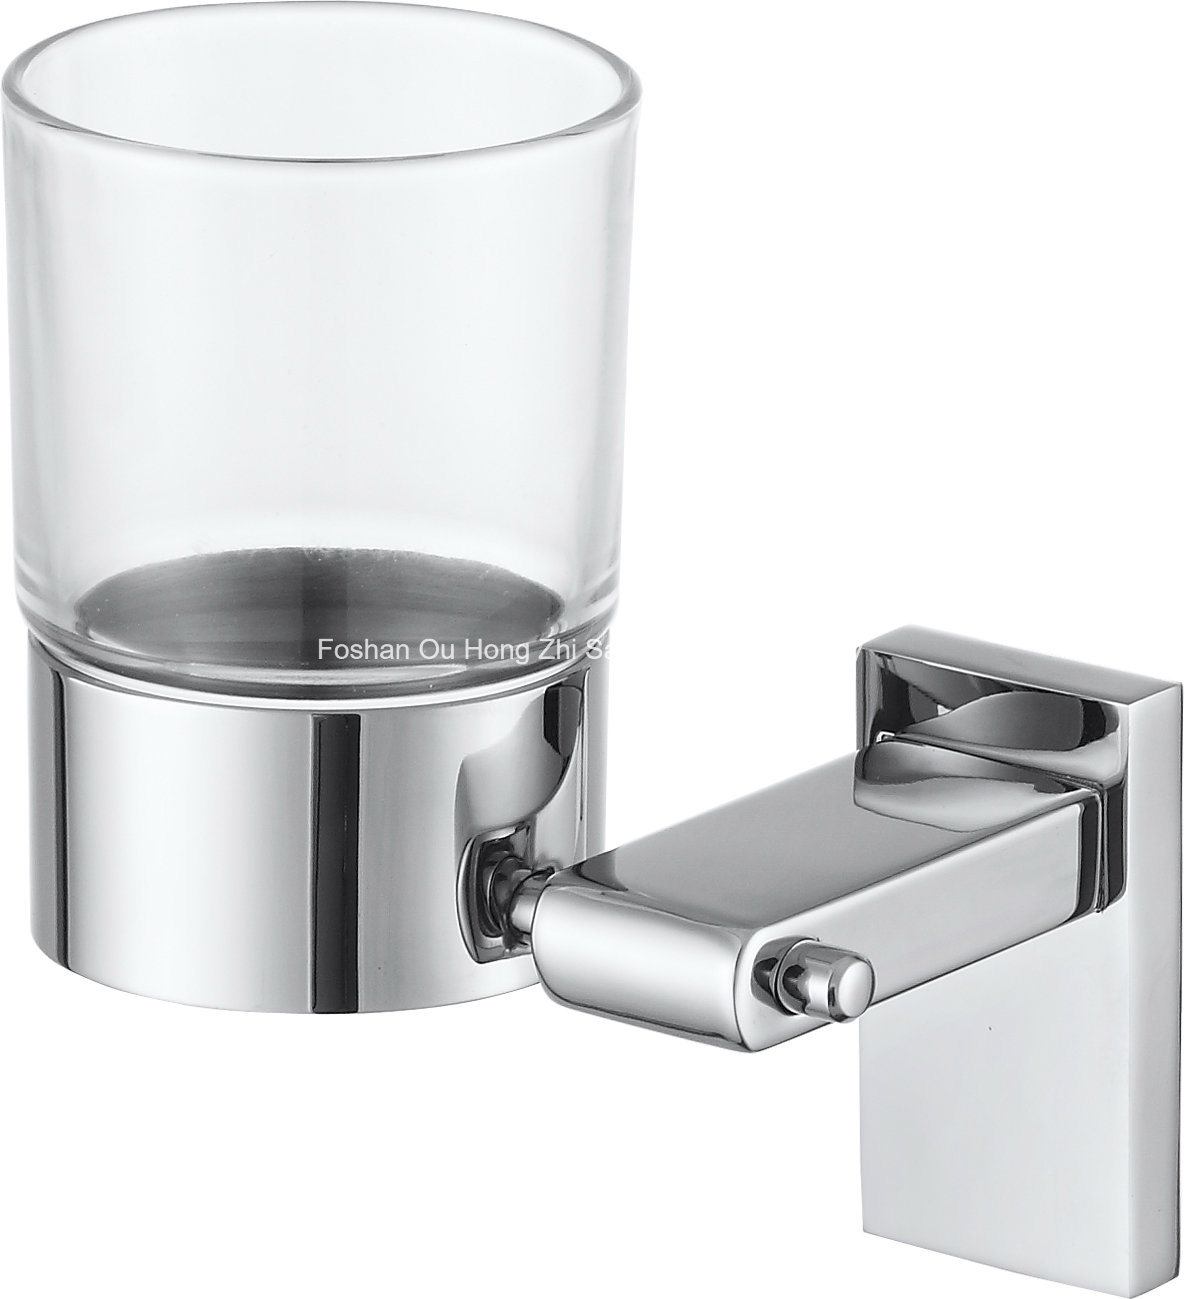 China High Grade Stainless Steel 304 Bathroom Accessories for Hotel ...